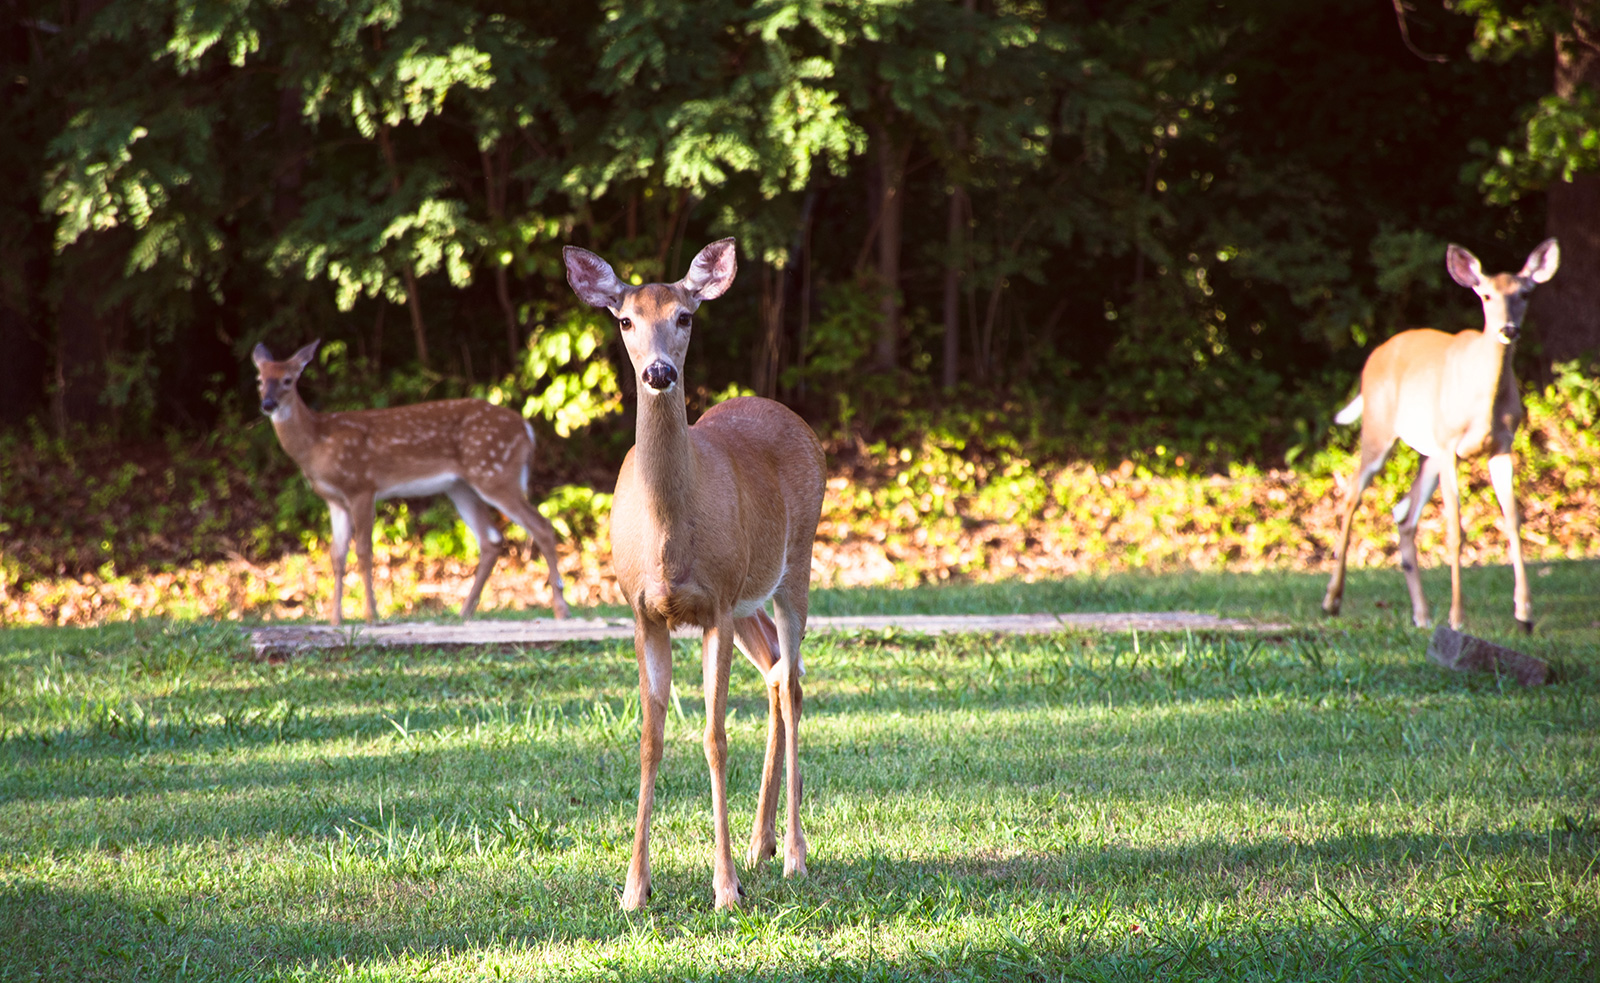 They might appear doe-eyed and vulnerable, but deer have been caught on camera foraging in bird nests, and even going after songbirds on the ground. Bambi is a predator.